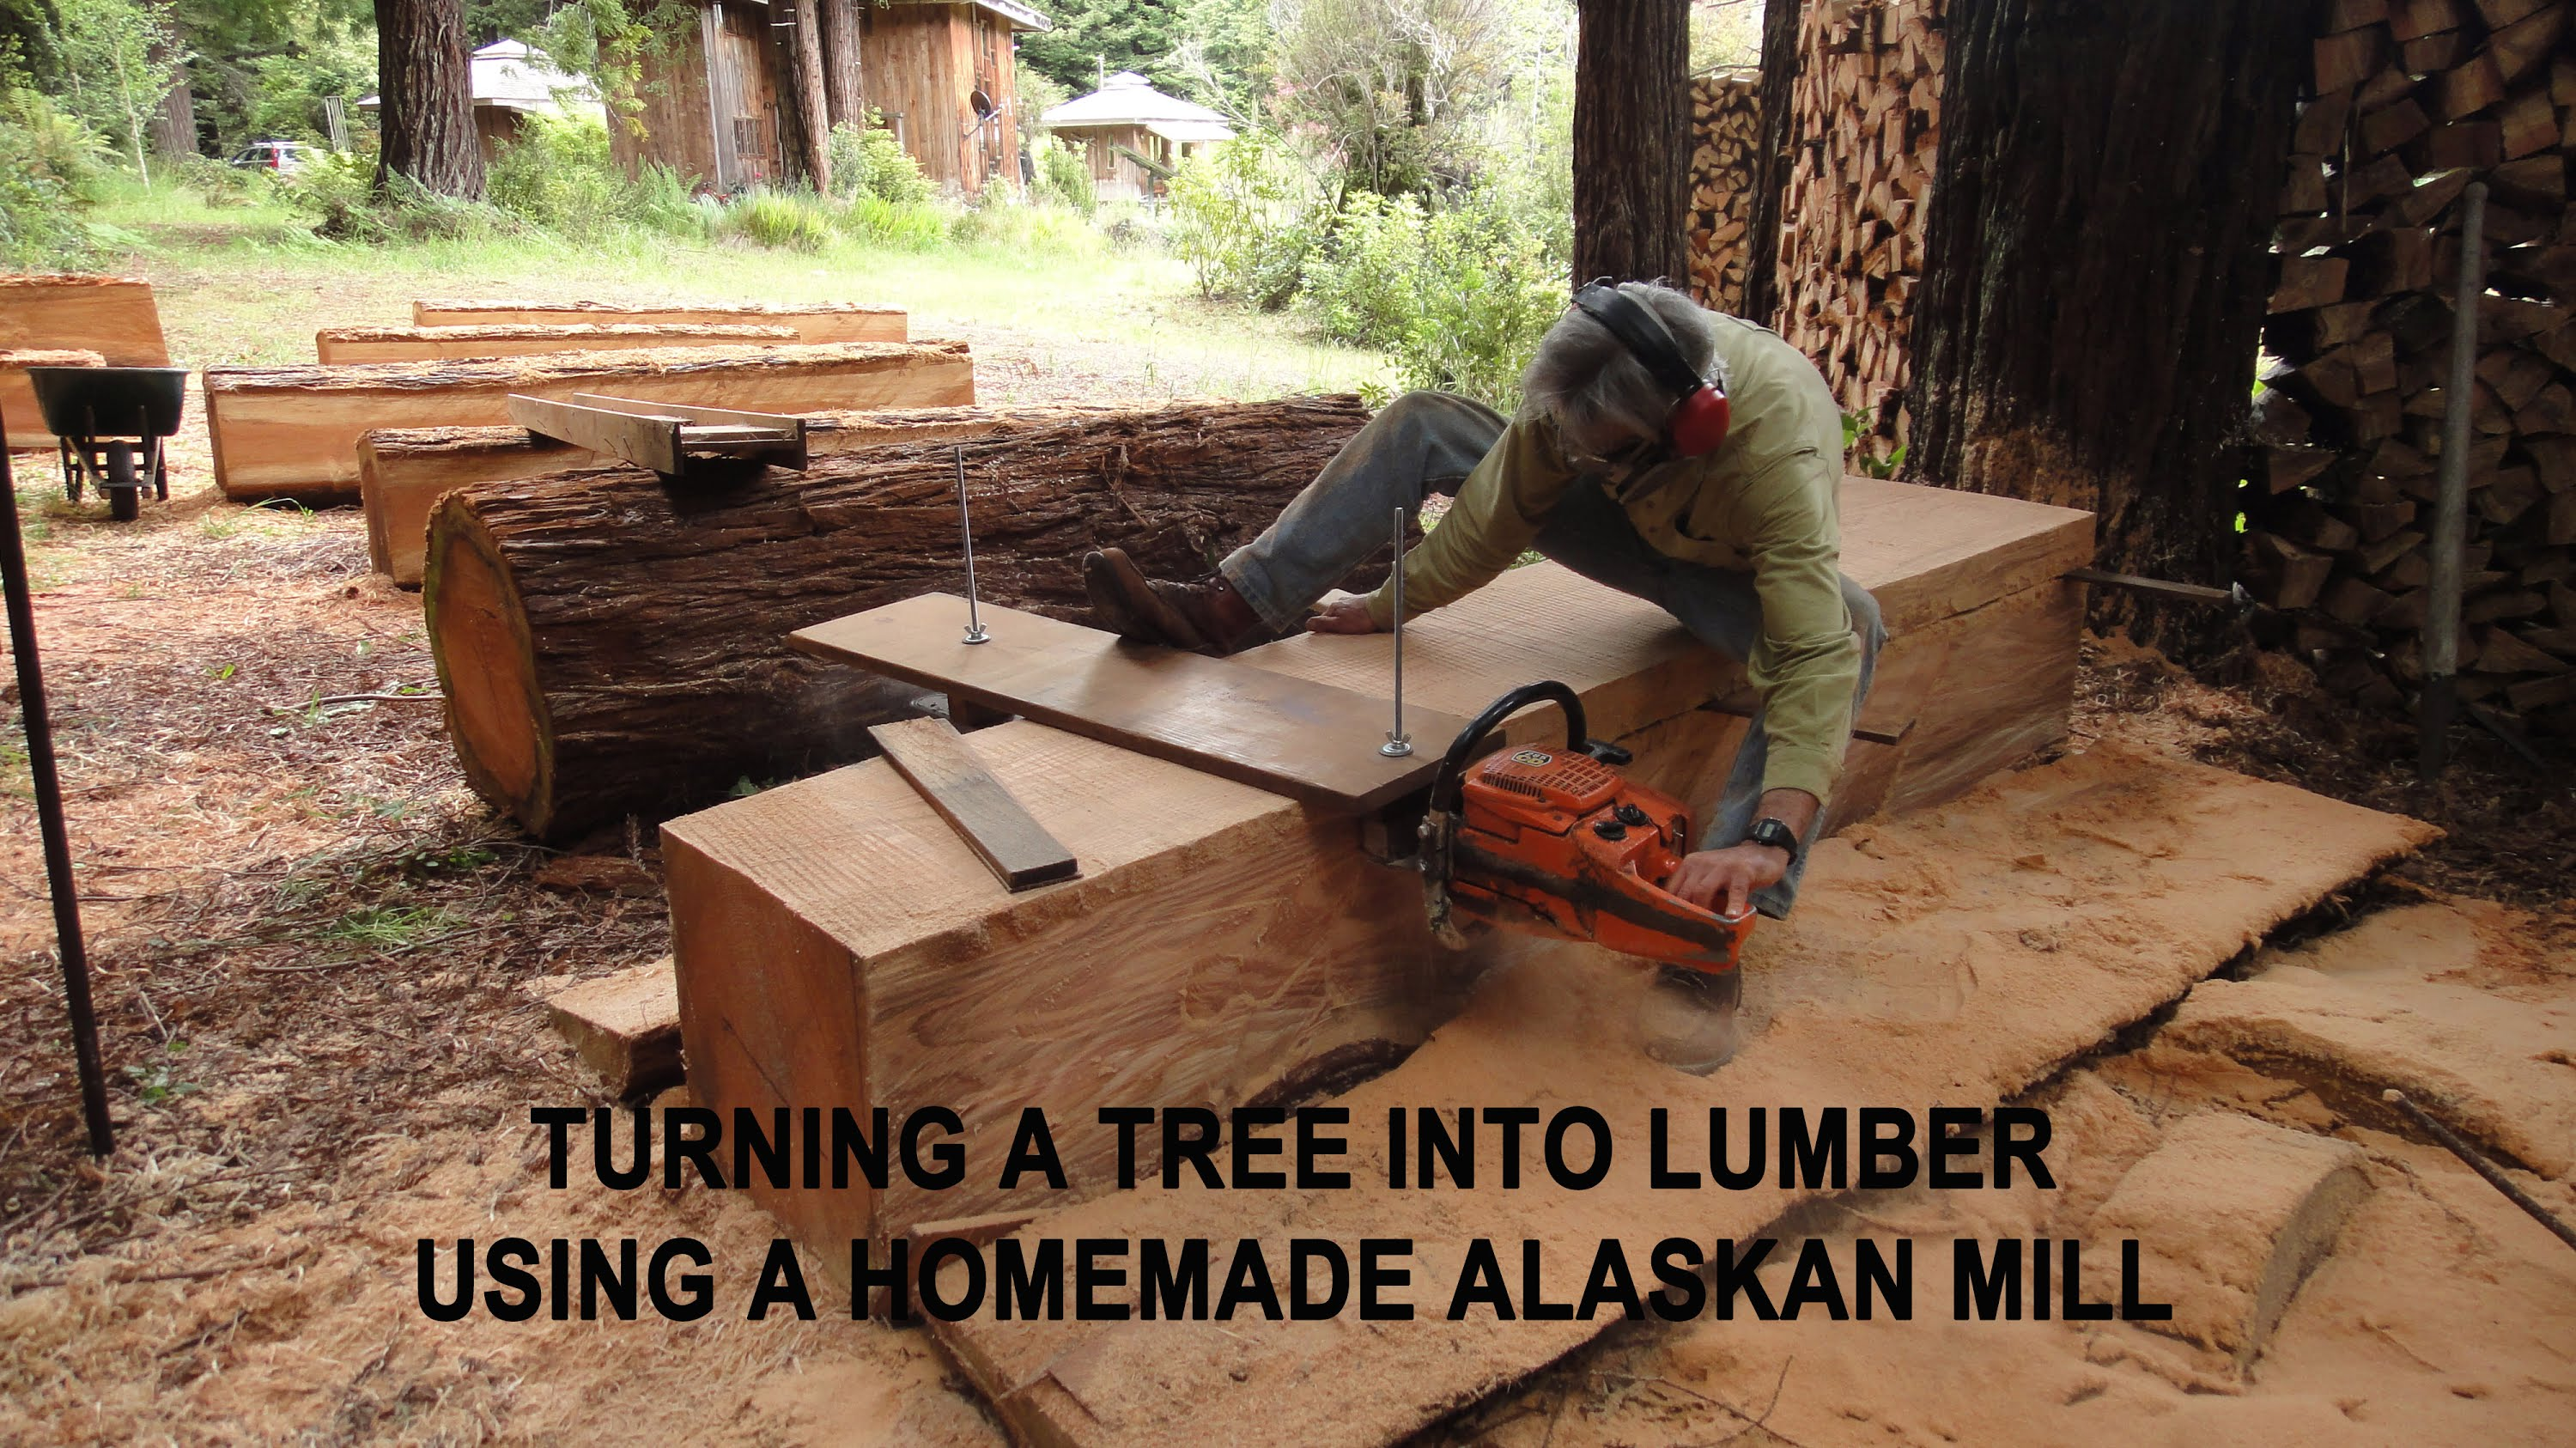 How To Turn A Tree Into Lumber Using A Homemade Alaskan